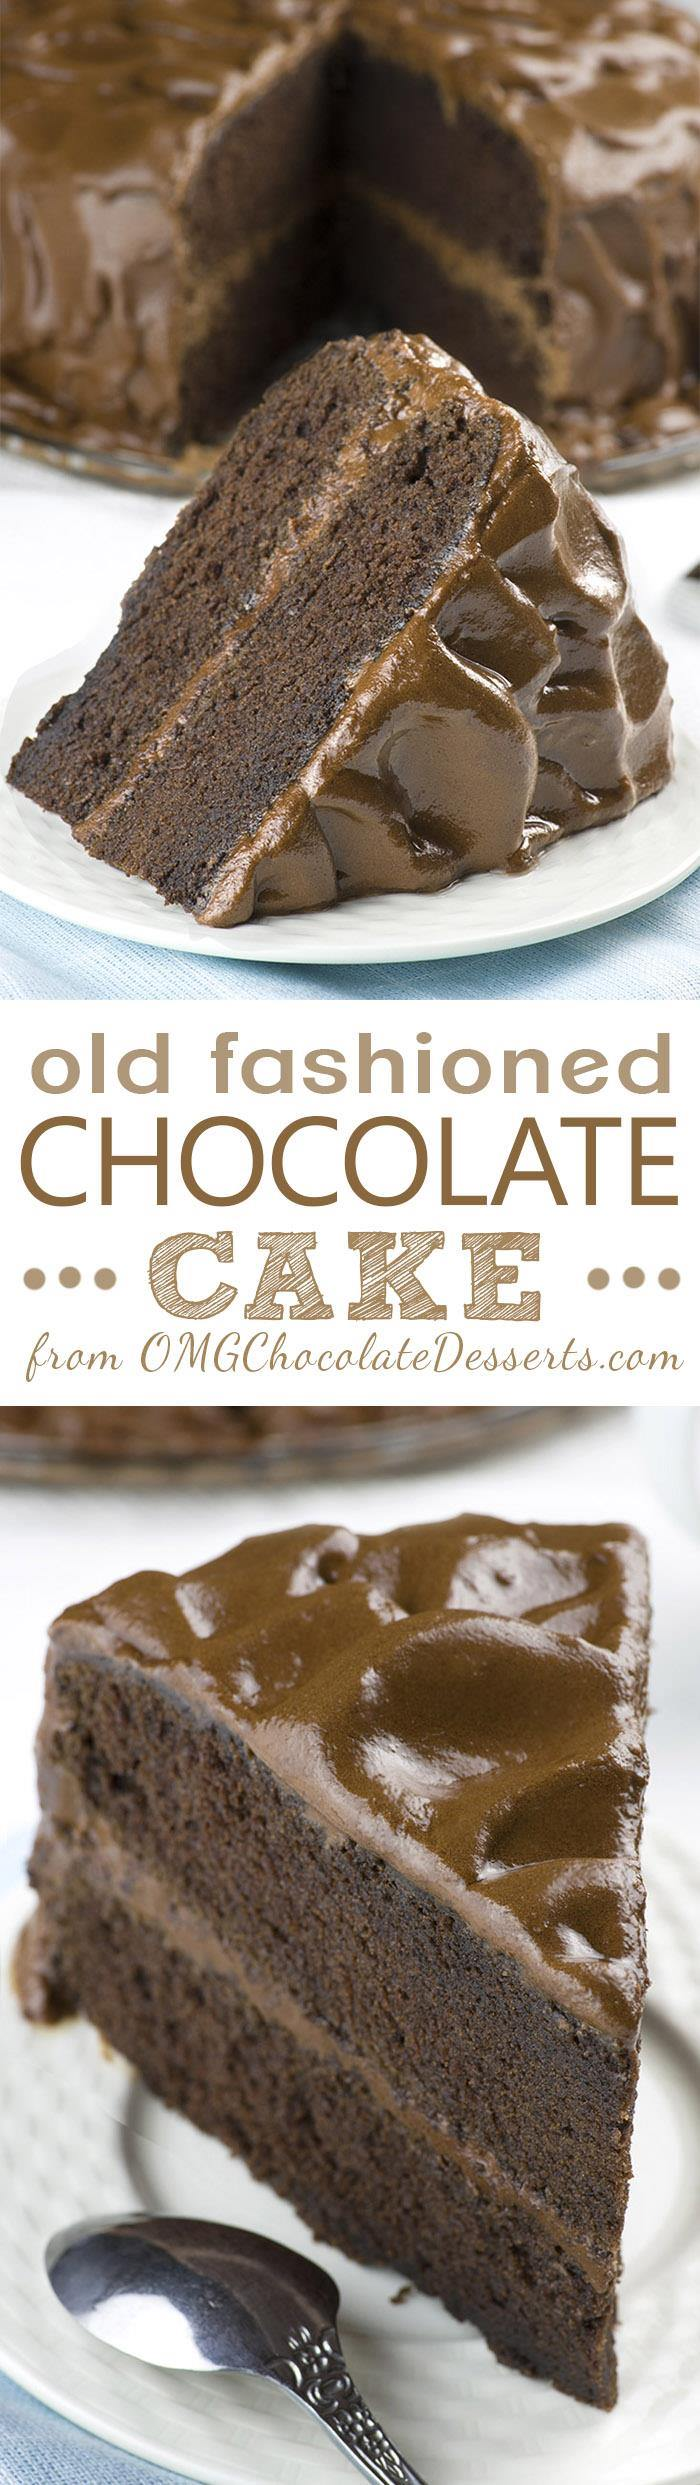 Old fashioned Chocolate Cake is dangerously delicious, rich and decadent cake packed with real chocolate flavor. It's perfect birthday cake because chocolate cake is just about everyone's favorite!!!